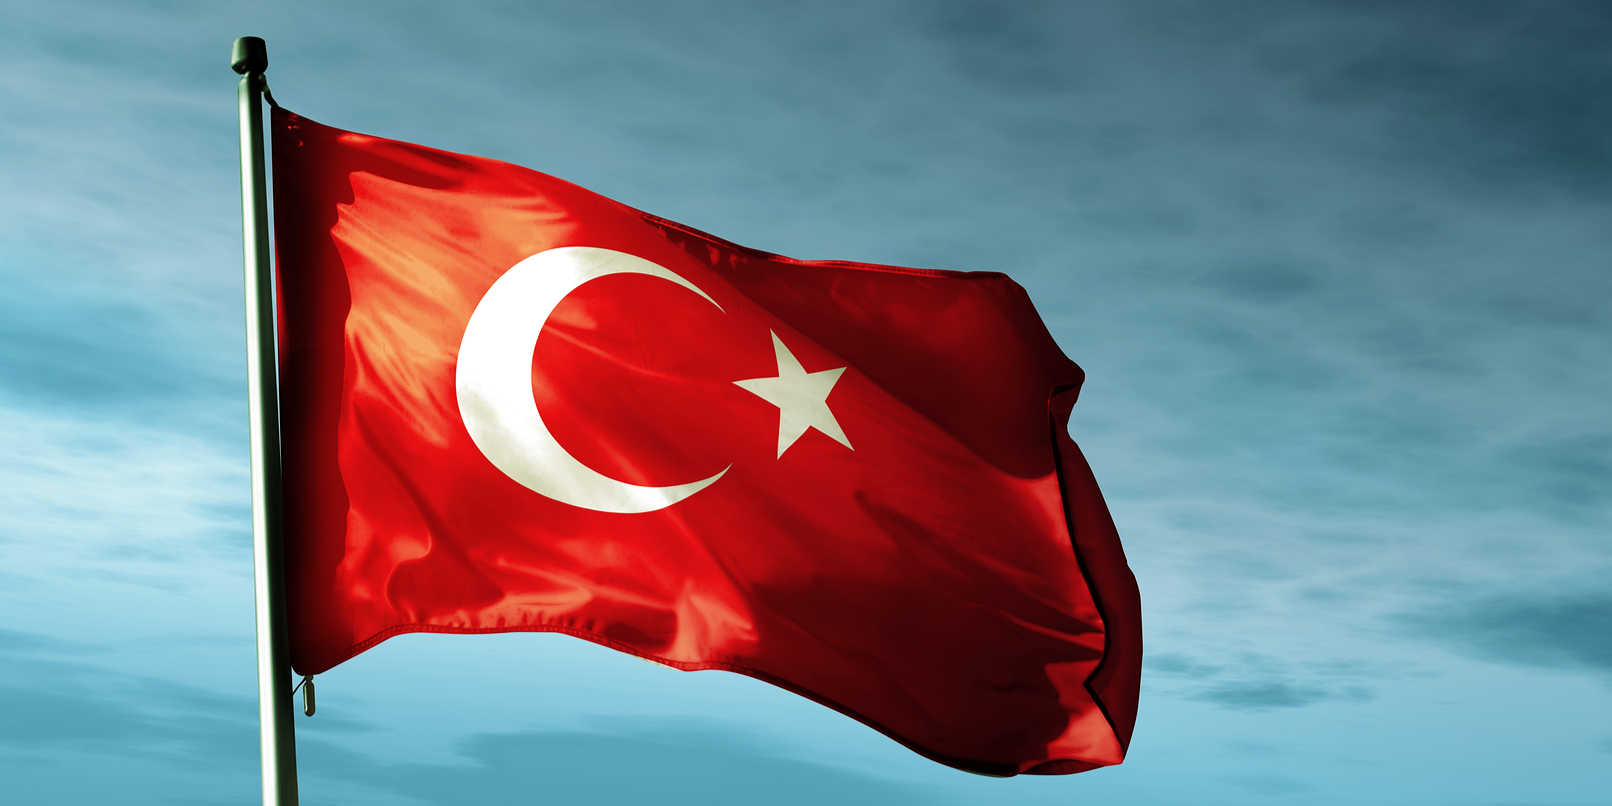 Turkey has reportedly blocked Twitter, Facebook and WhatsApp